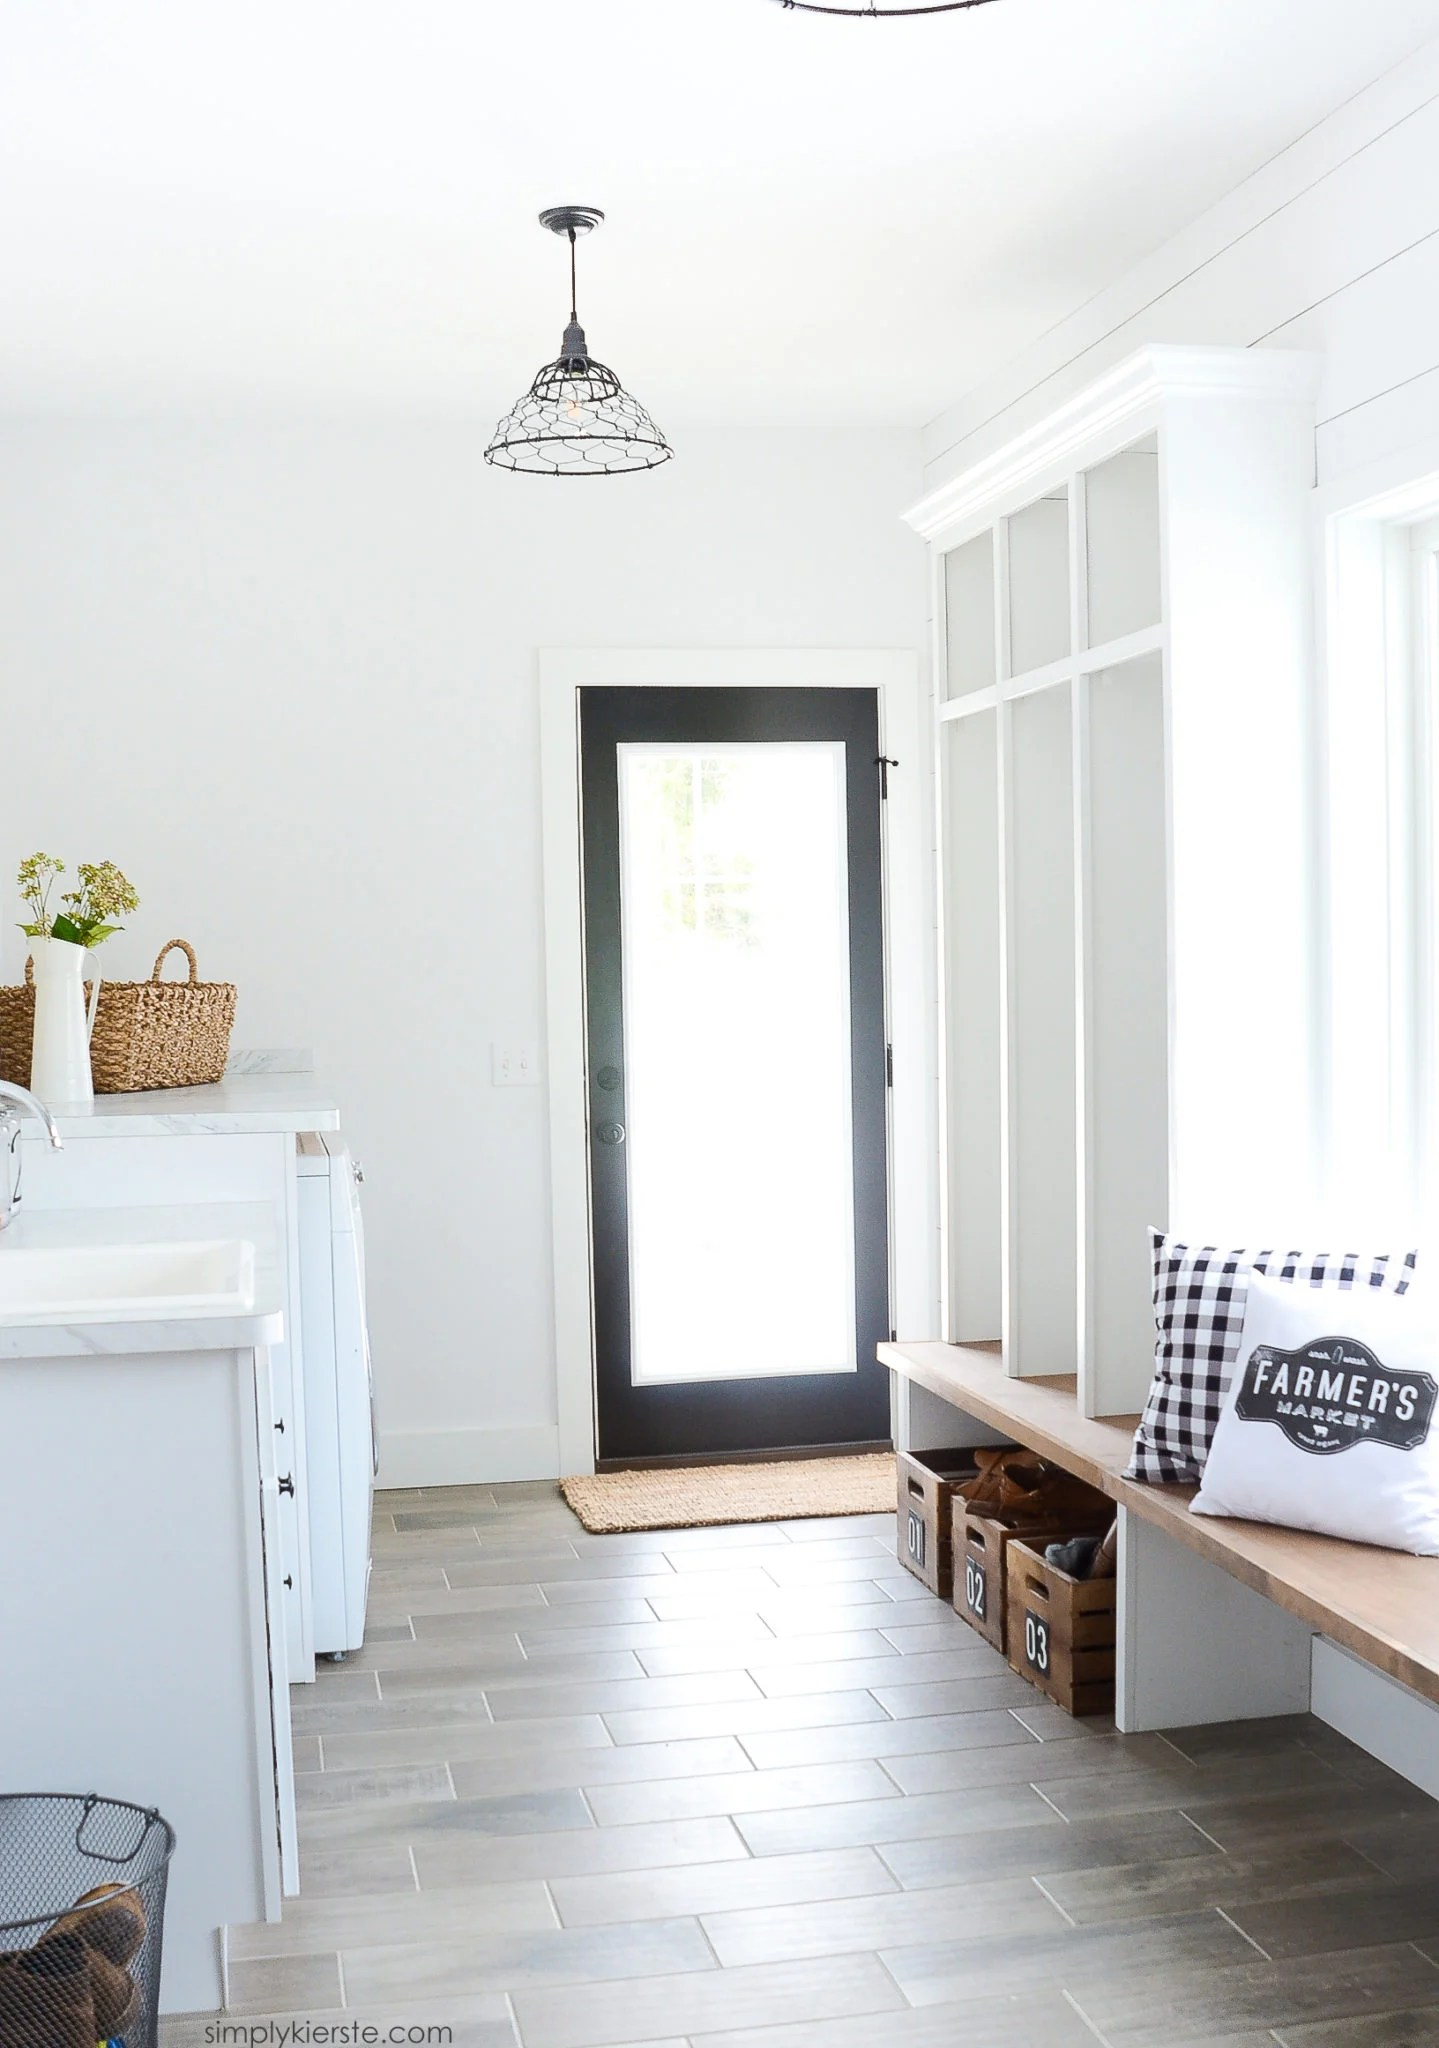 Farmhouse Laundry Room Floor Farmhouse Laundry Room And Mud Room Simply Kierste Design Co